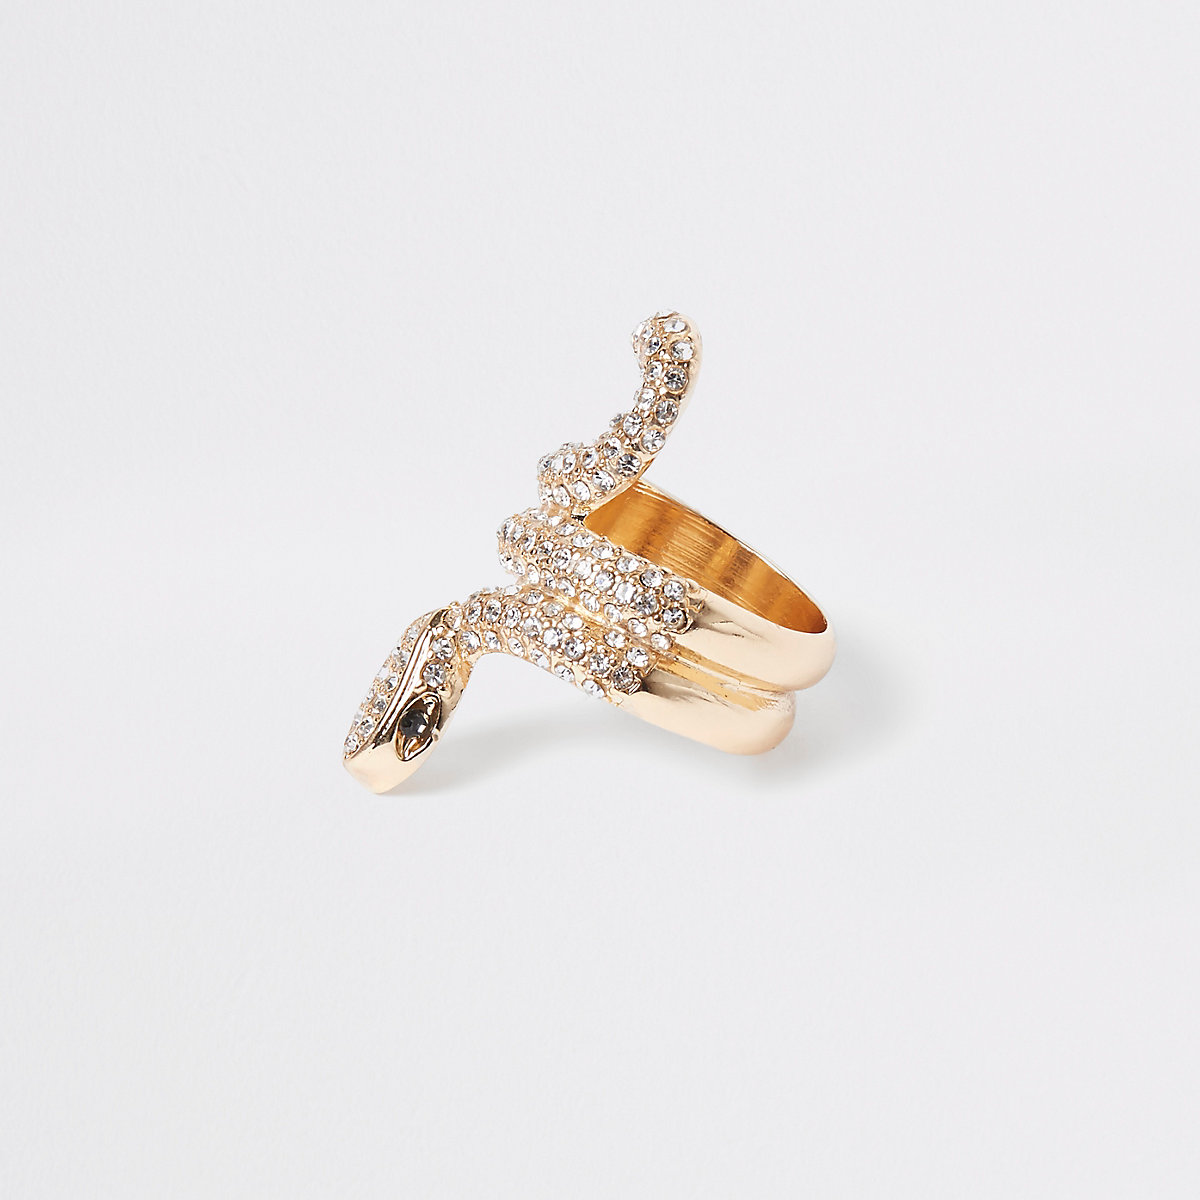 Gold color rhinestone paved snake ring